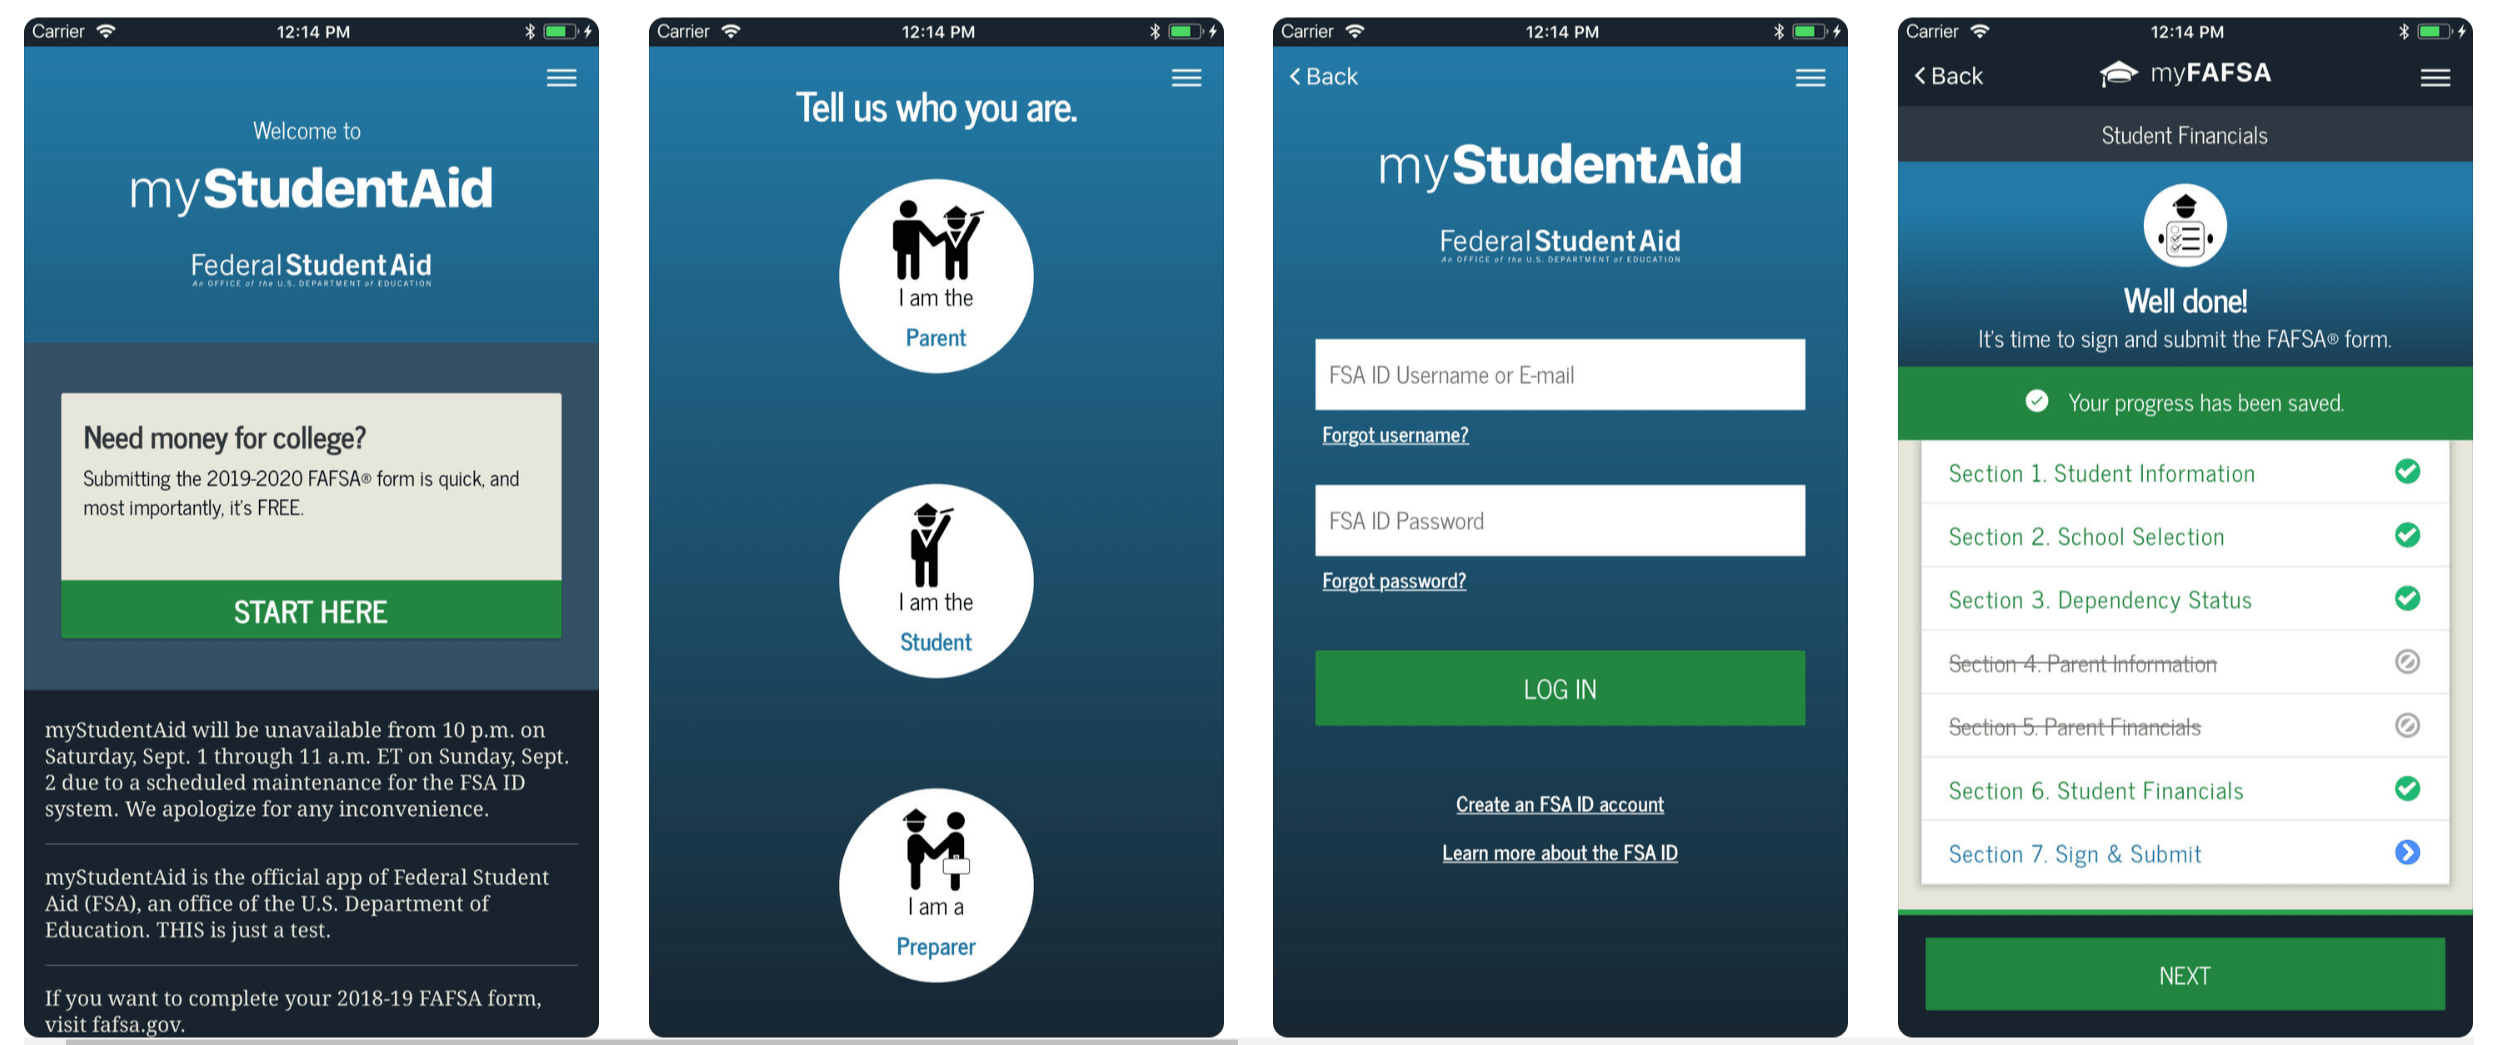 NEW FEDERAL STUDENT AID (FSA) MOBILE APP